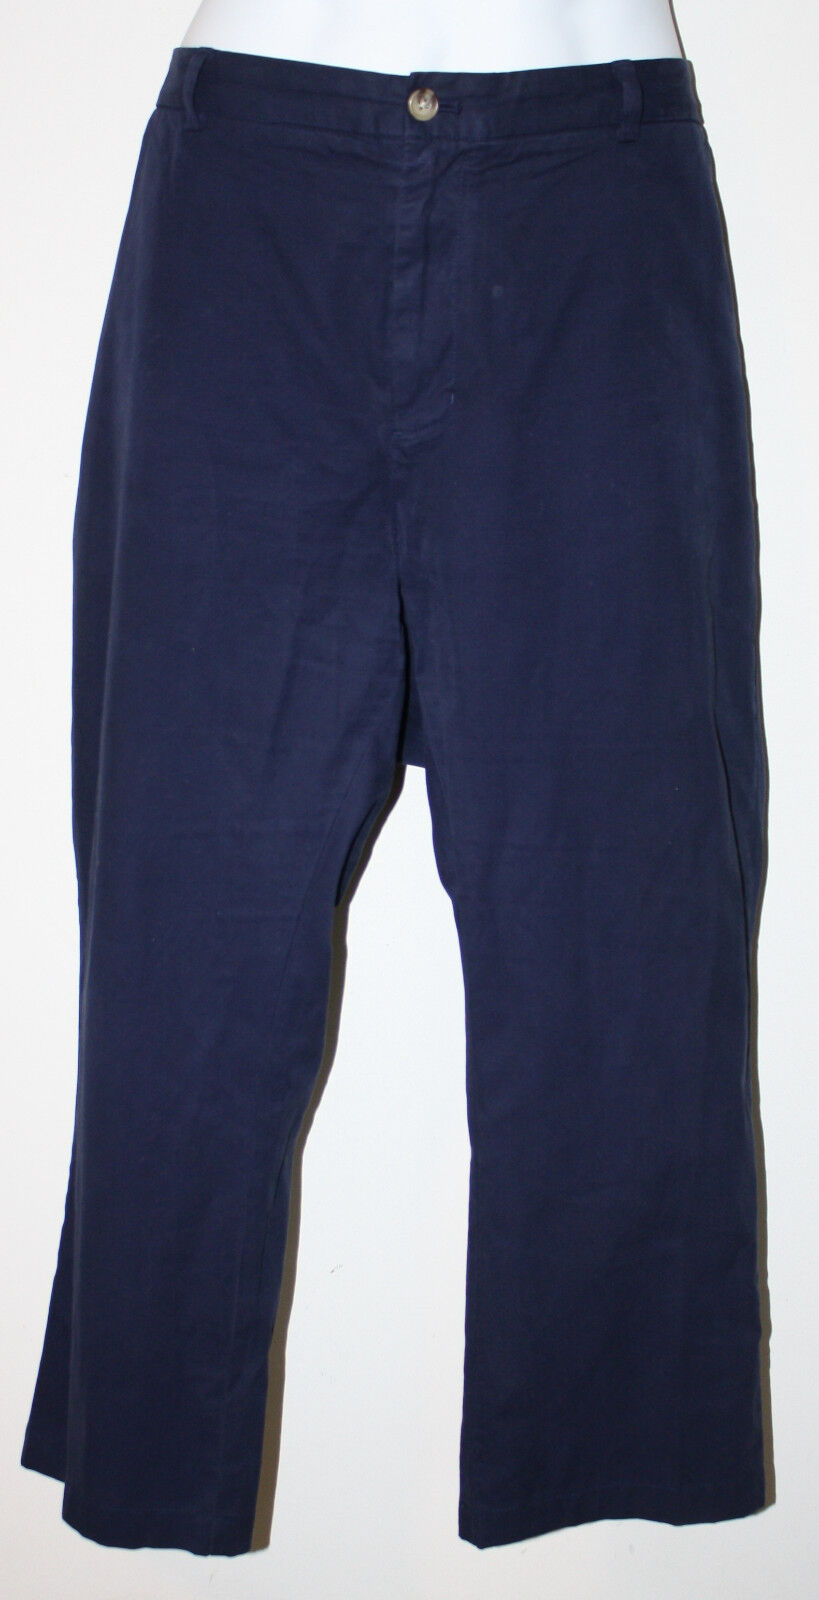 VINEYARD VINES Navy bluee Cotton Pants 42 x 26 Slim Fit Breaker